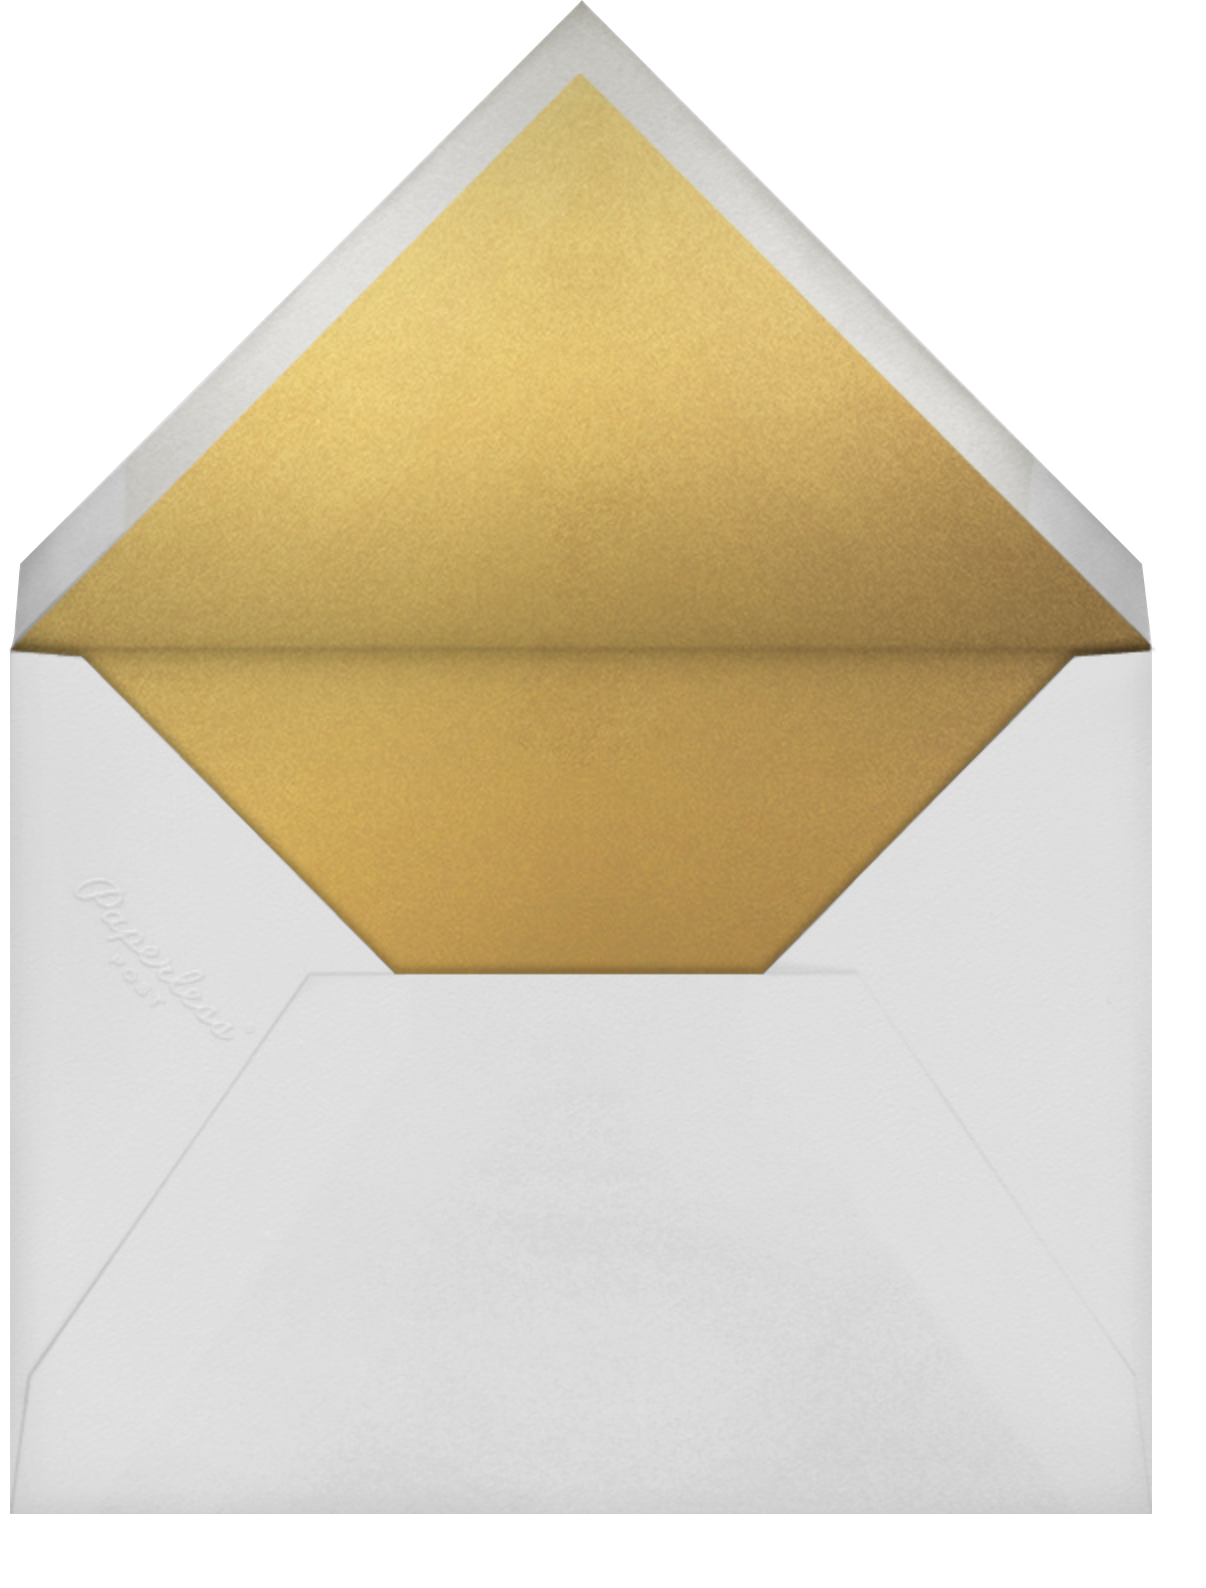 Gold Record - Paperless Post - Father's Day - envelope back